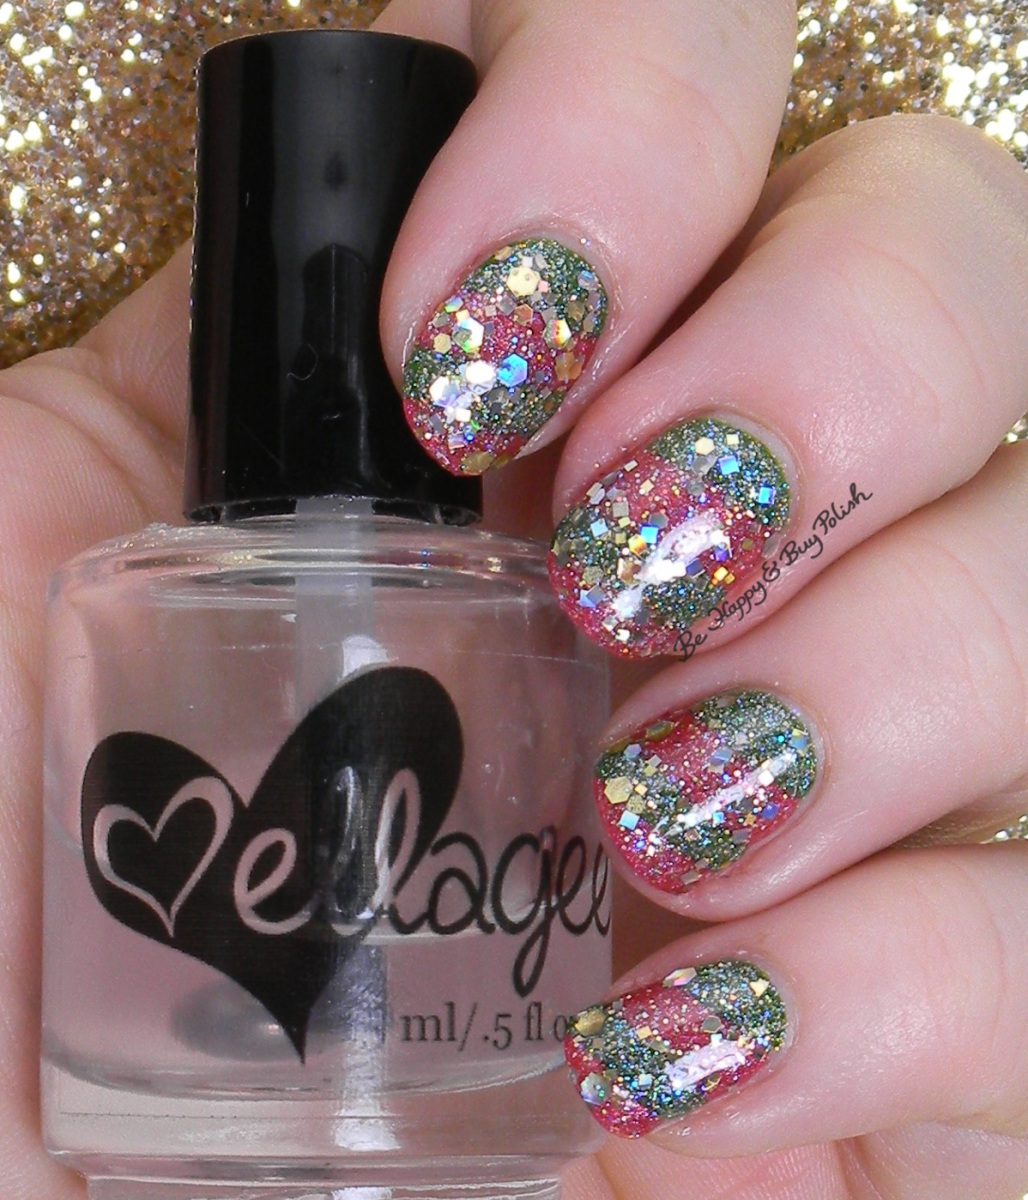 Christmas Nails With Glitter: 12 Days Of Christmas Nail Art: Glitter